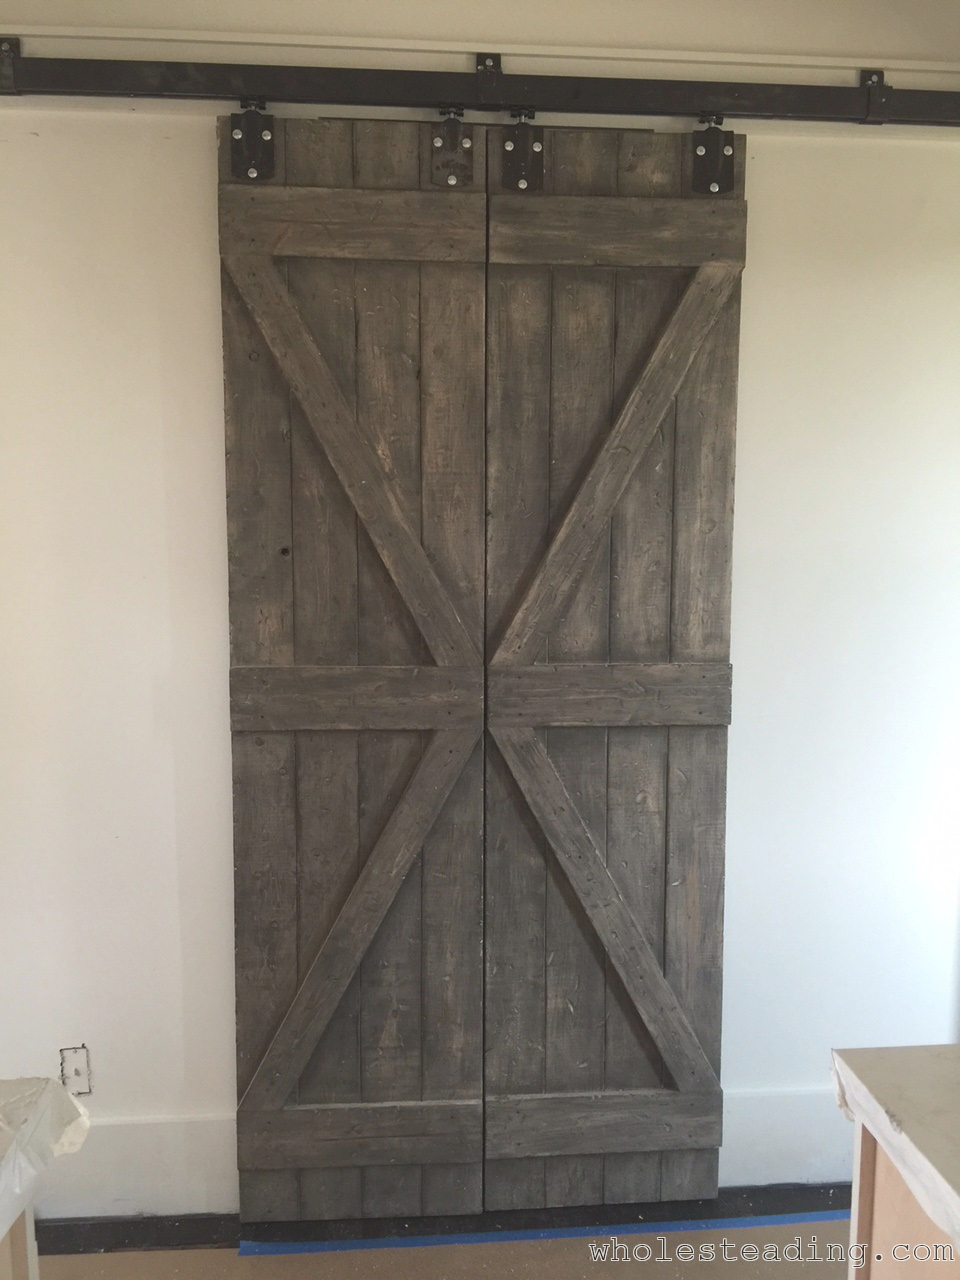 Homemade Barn Doors Wholesteading Com